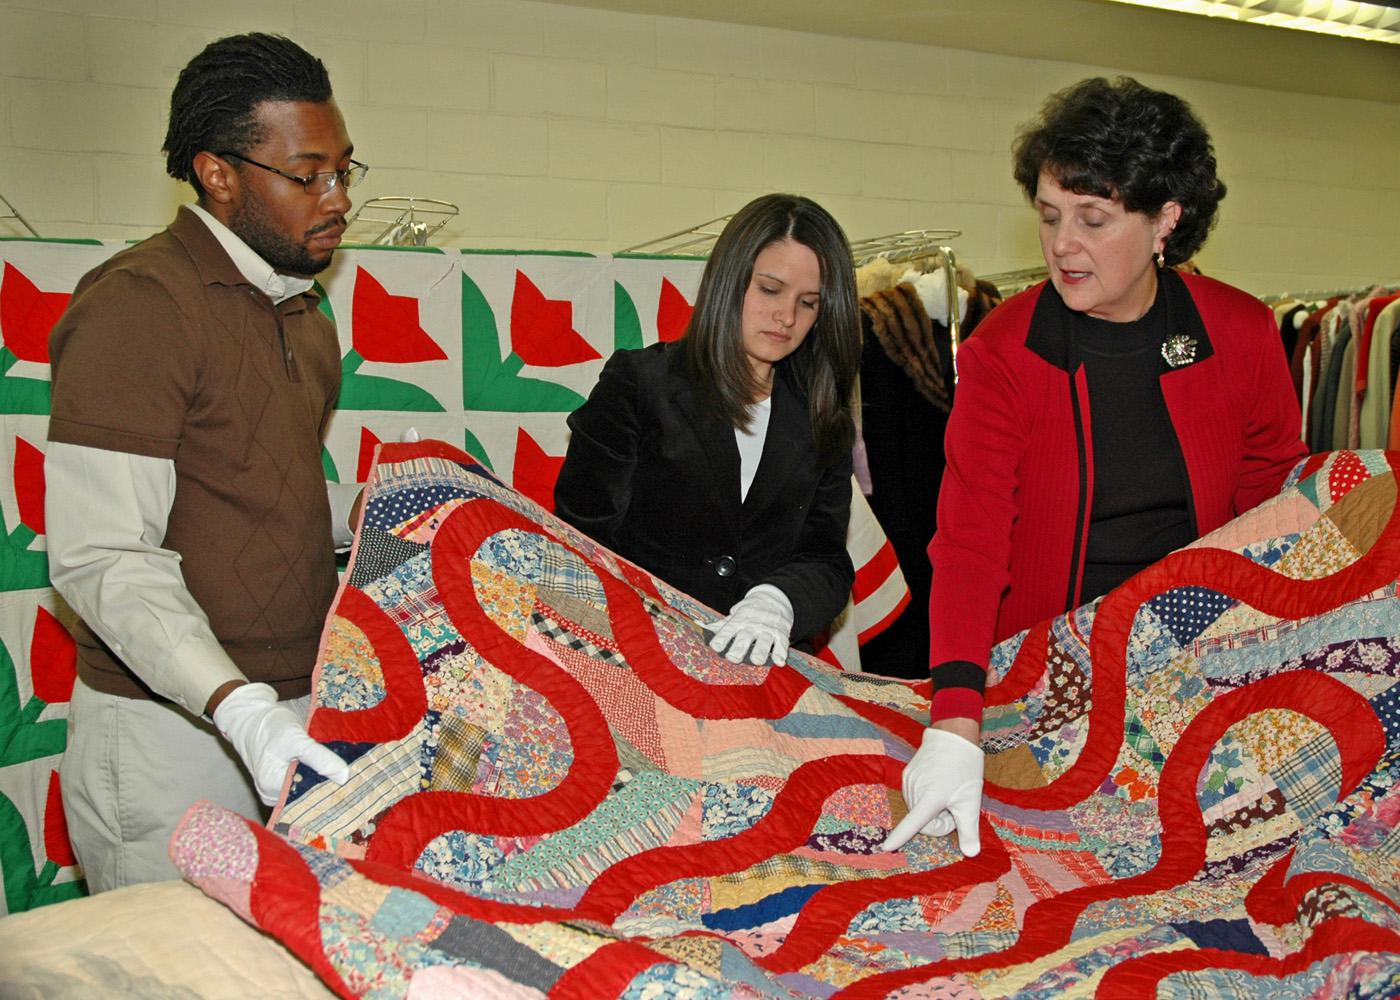 Mississippi State University students Parron Edwards (left), a junior from Lexington, and Shannon Sorro, a senior from Clarksville, Tenn., listen as Wanda Cheek, associate professor of human sciences, discusses the intricacies of quilts and their patterns.